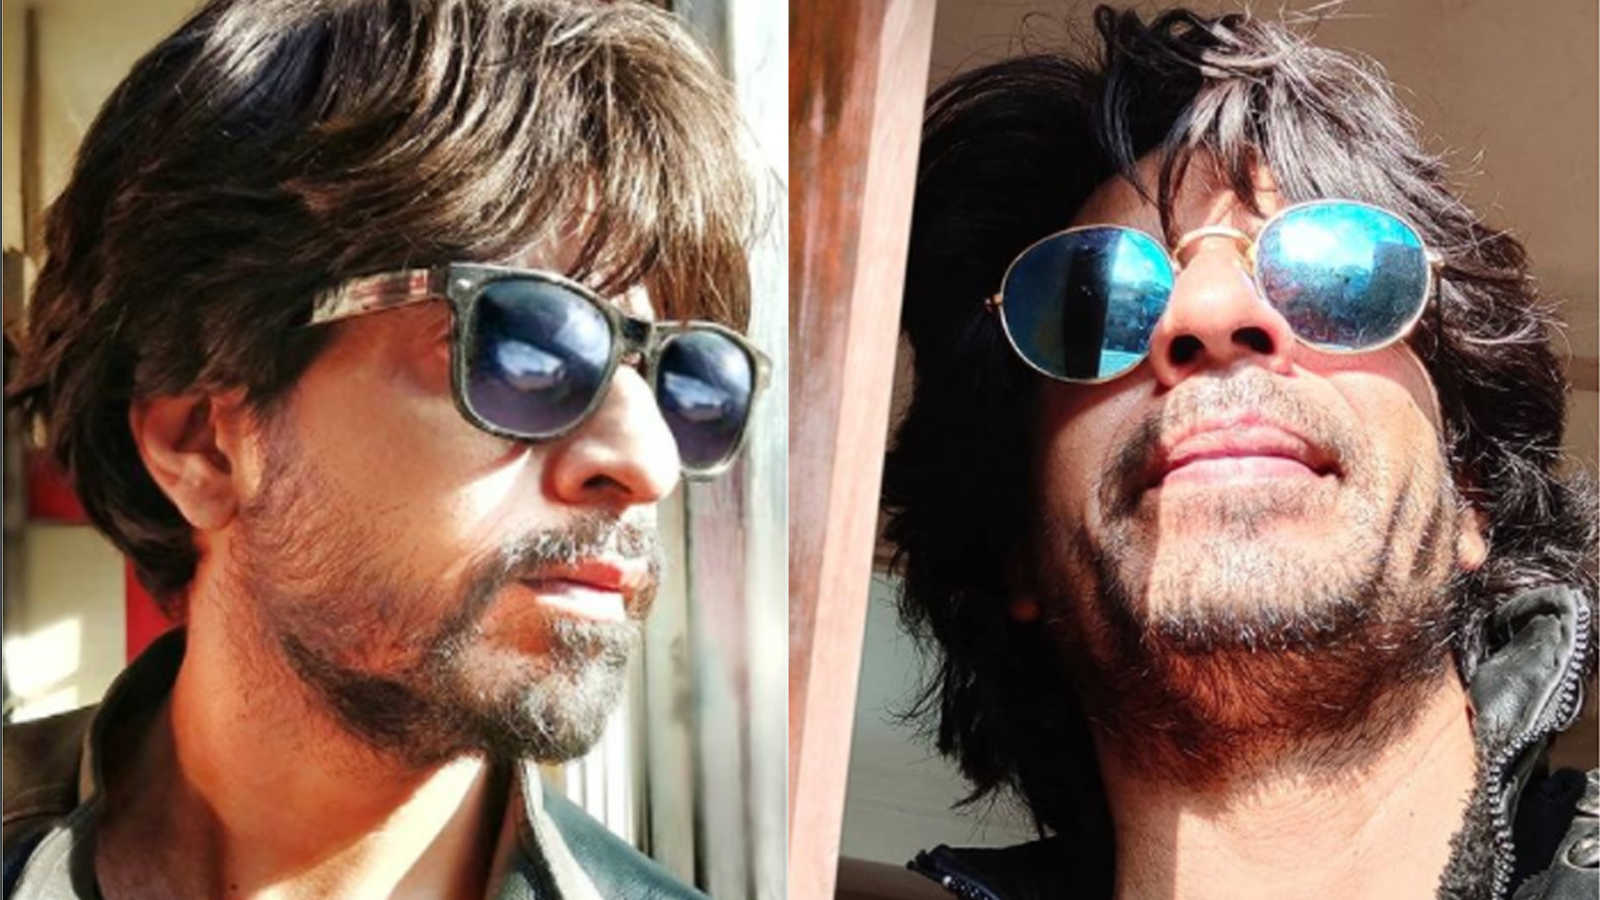 Shahrukh Khan shared a new video of himself with a new look